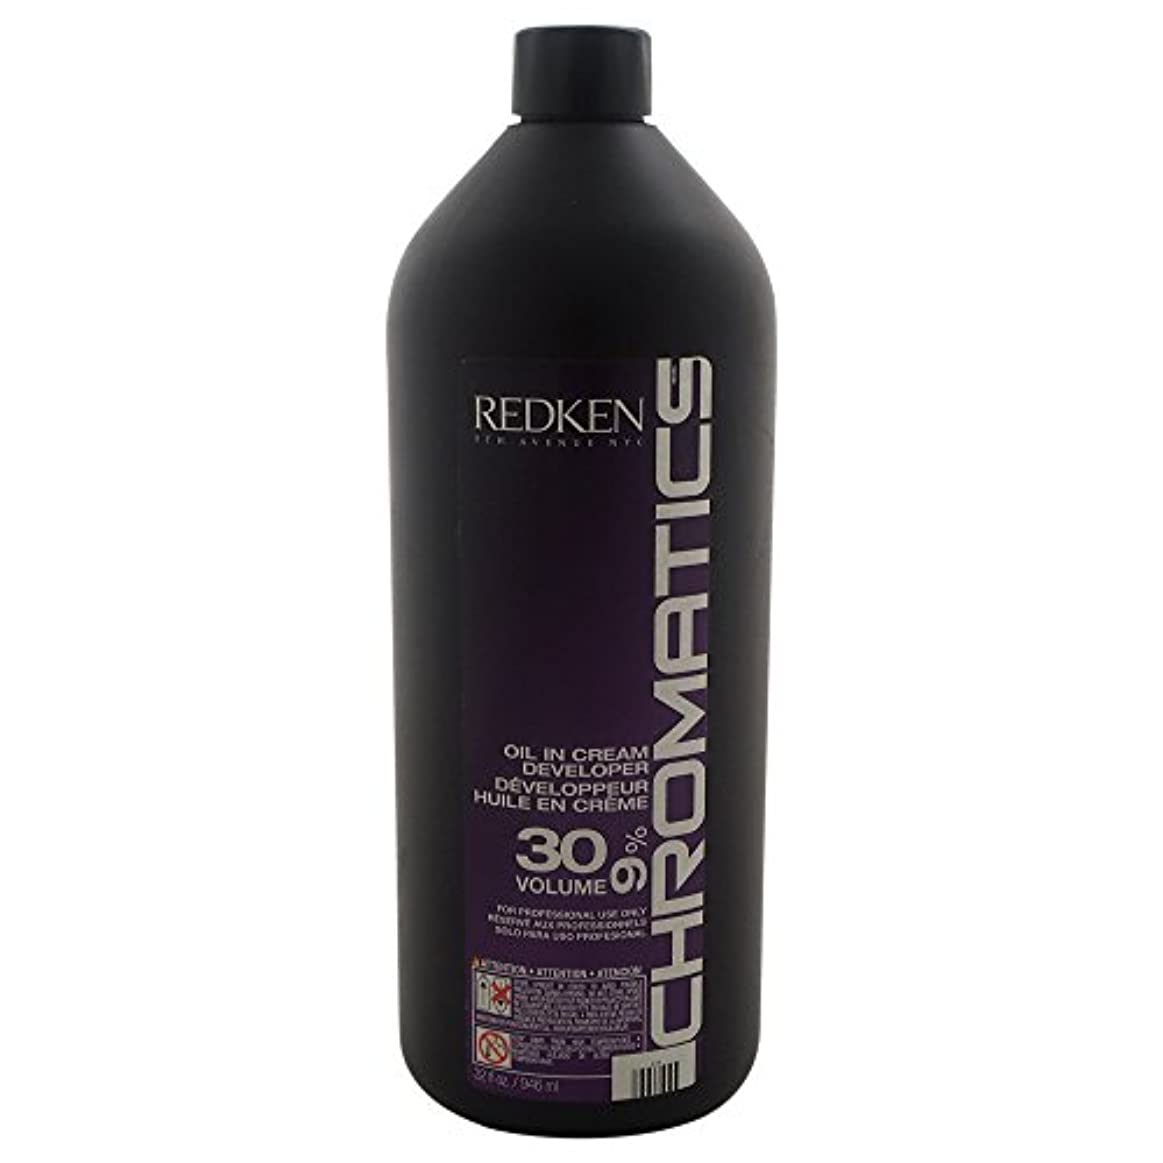 腸以降泥Redken Chromatics Oil In Cream Developer 30 Volume 9 Percent Cream, 32 Ounce by Redken